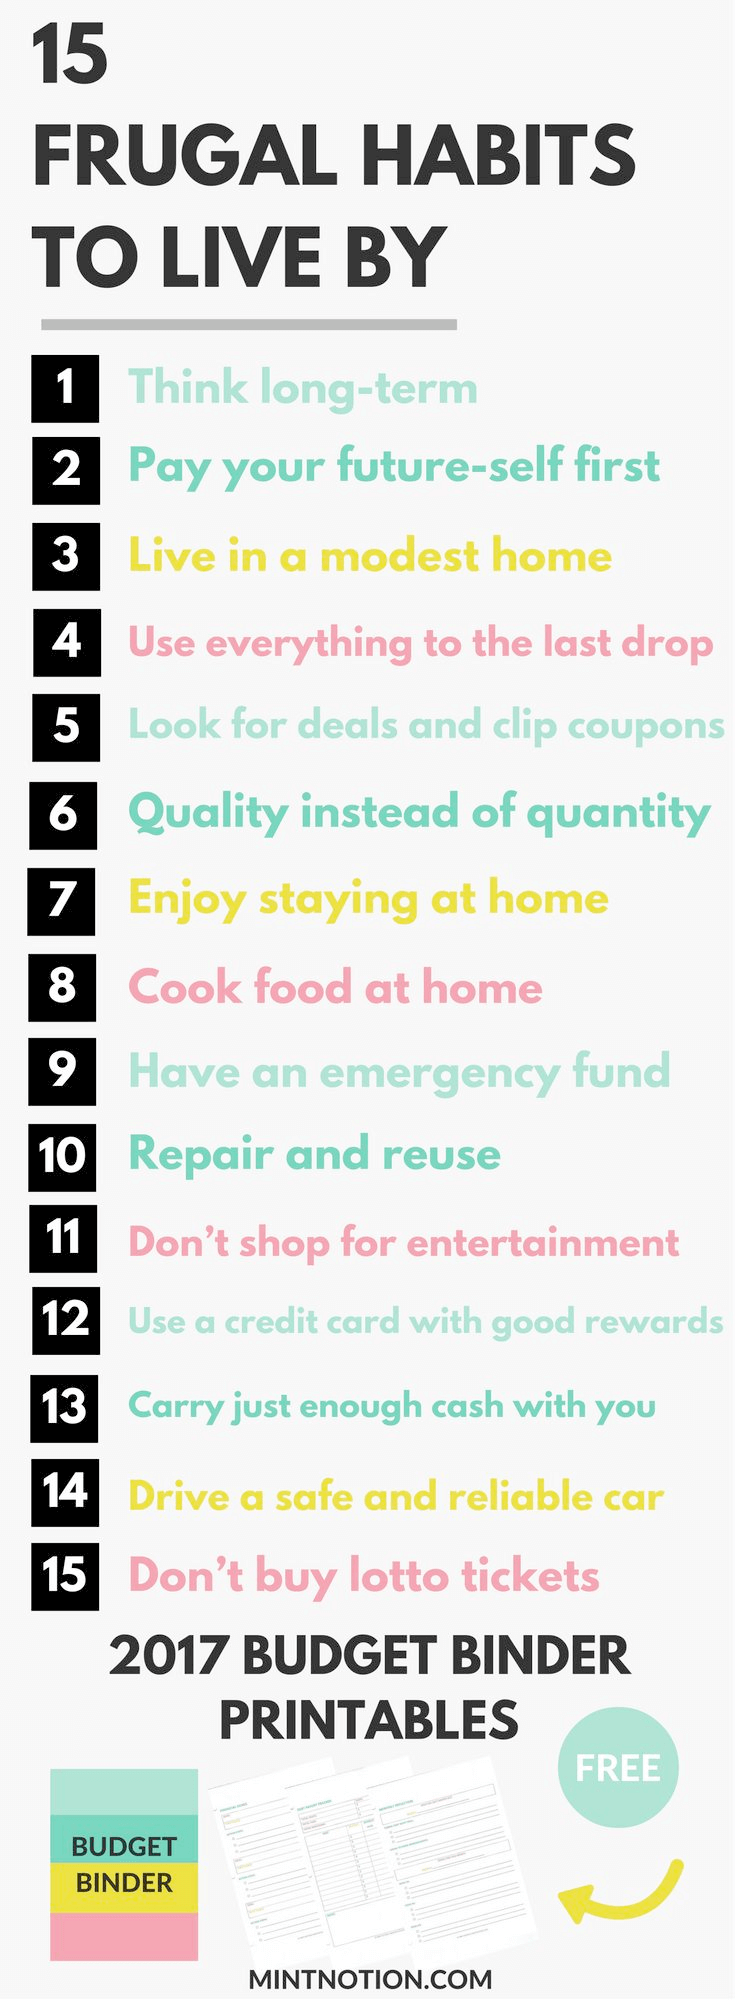 How to Save Money Living a Frugal Life